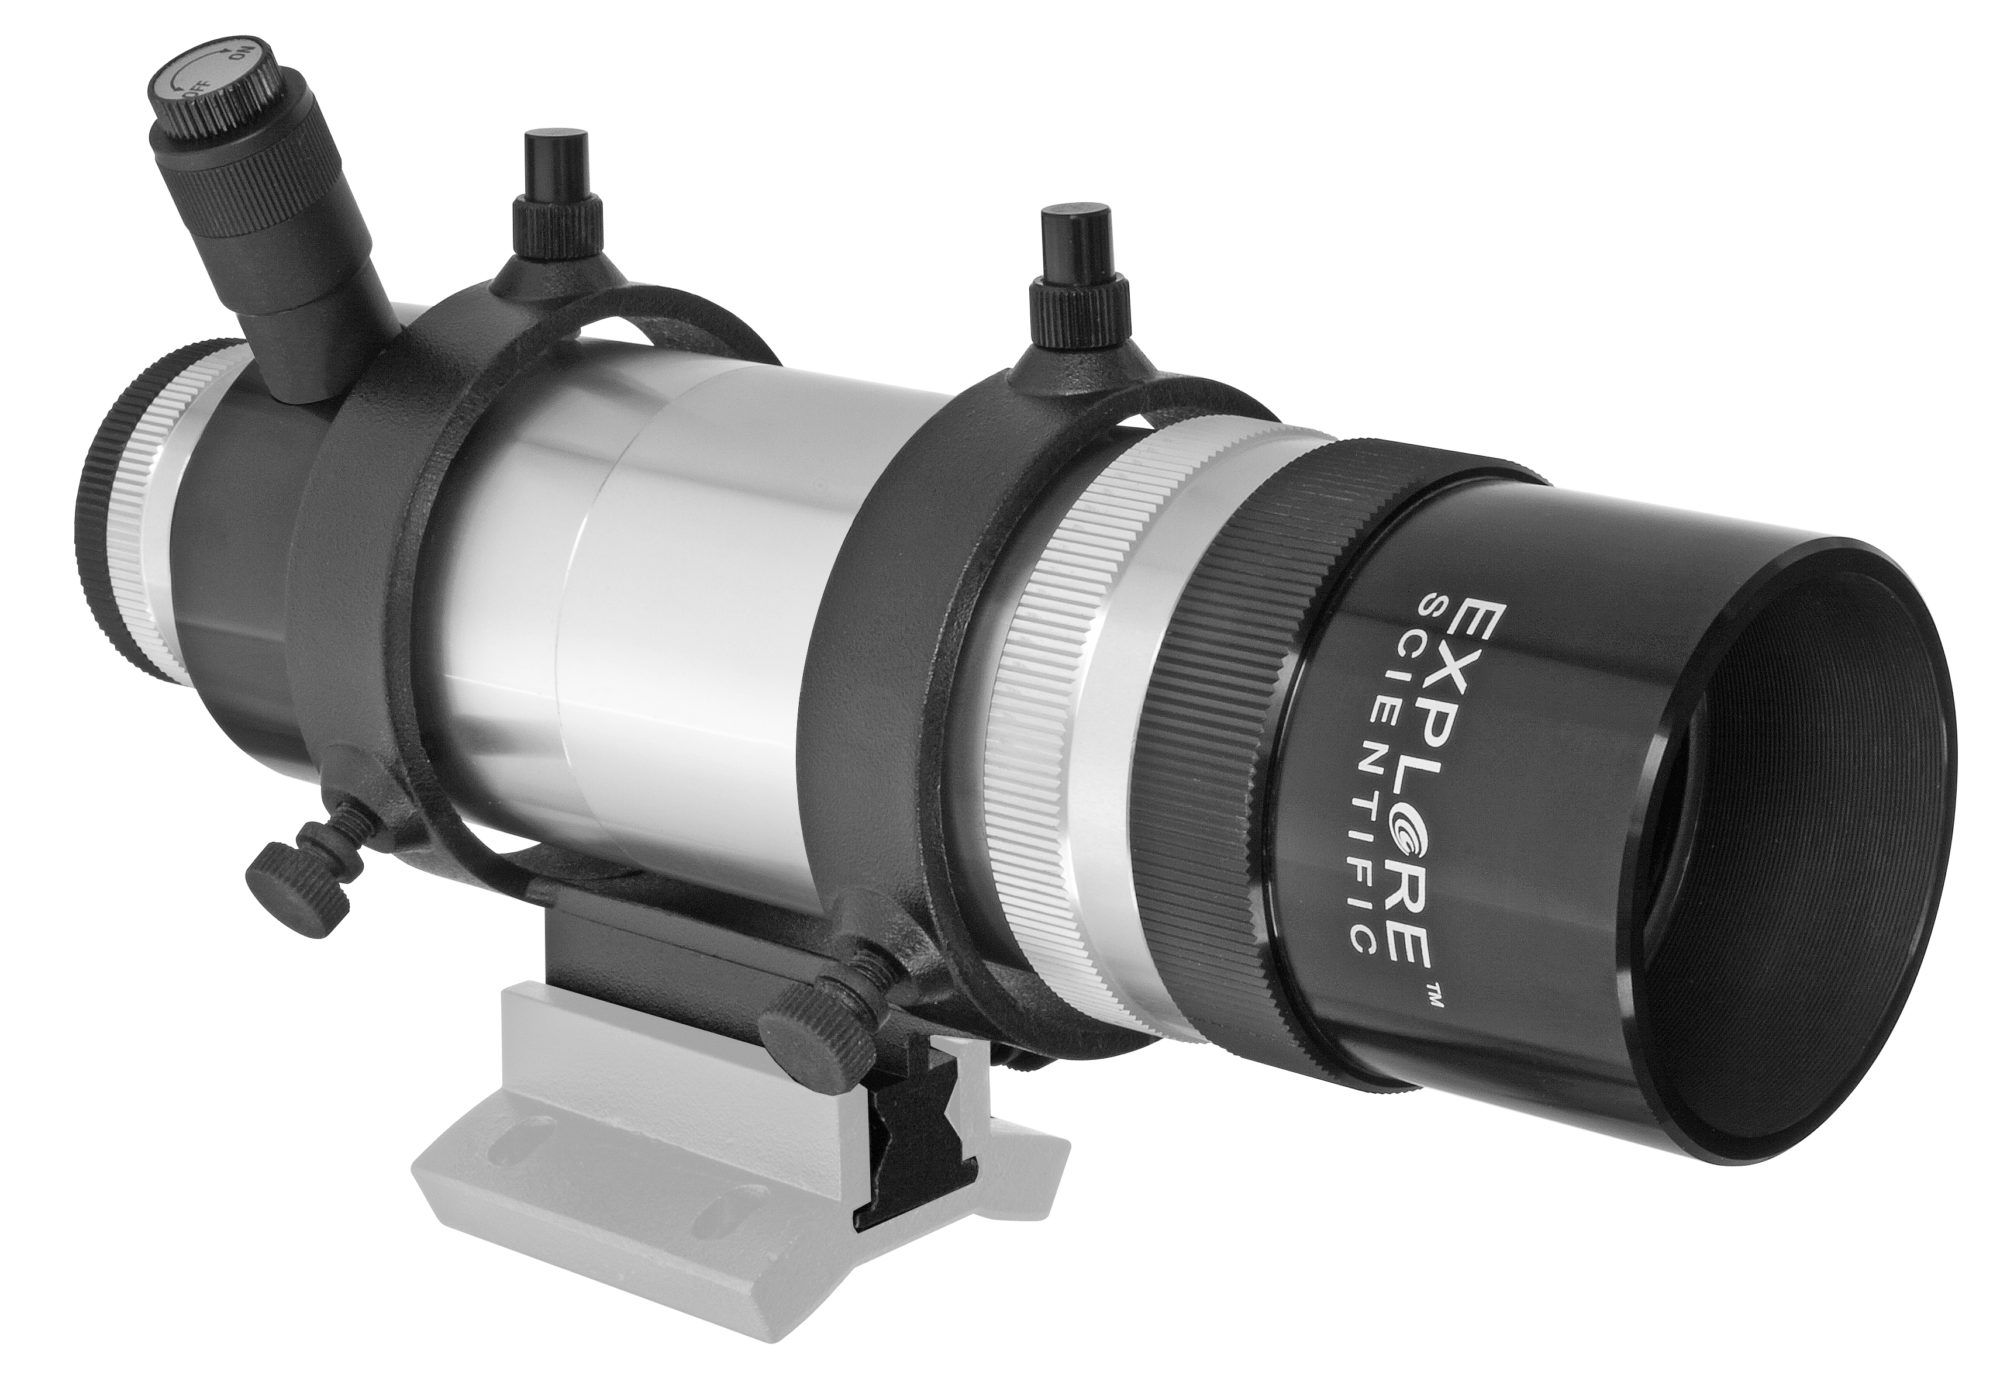 Explore Scientific 8x50 Illuminated Finder Scope